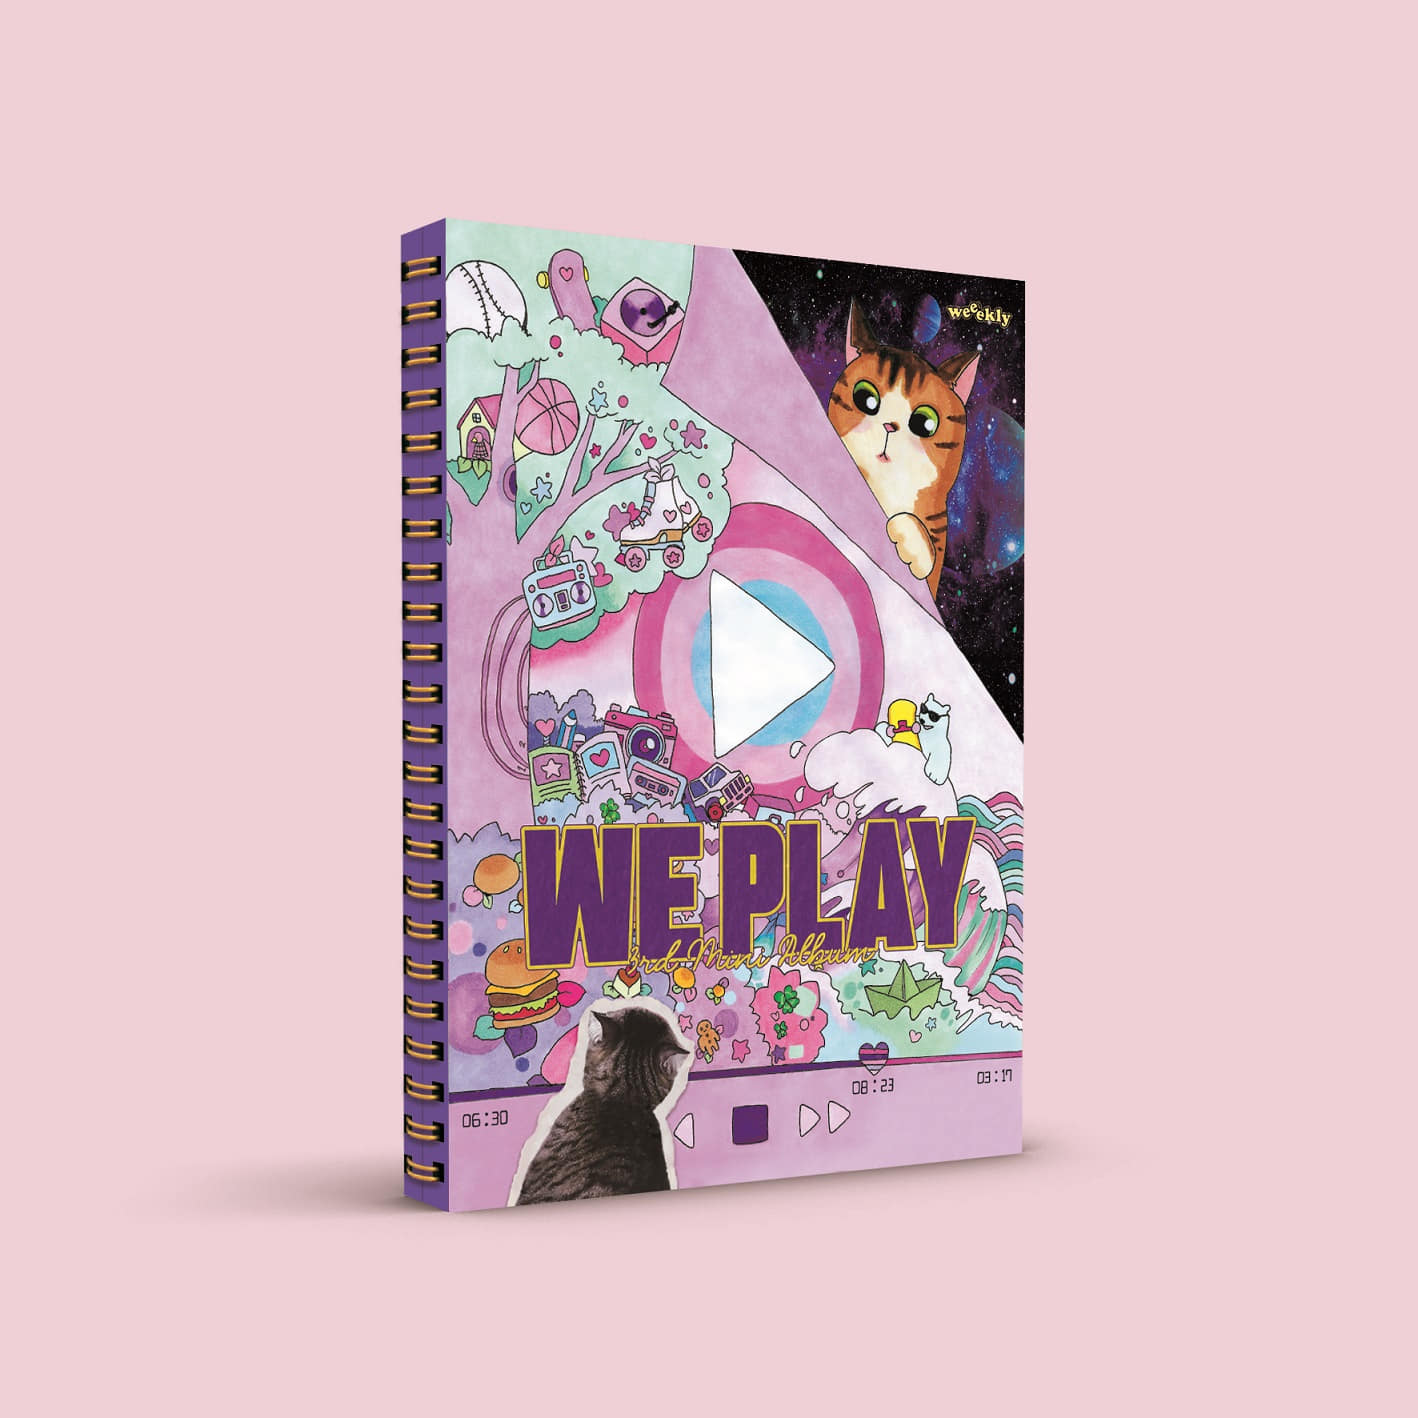 [PRE-ORDER] Weeekly - Mini Album Vol.3 [We play] (UP Ver.)케이팝스토어(kpop store)